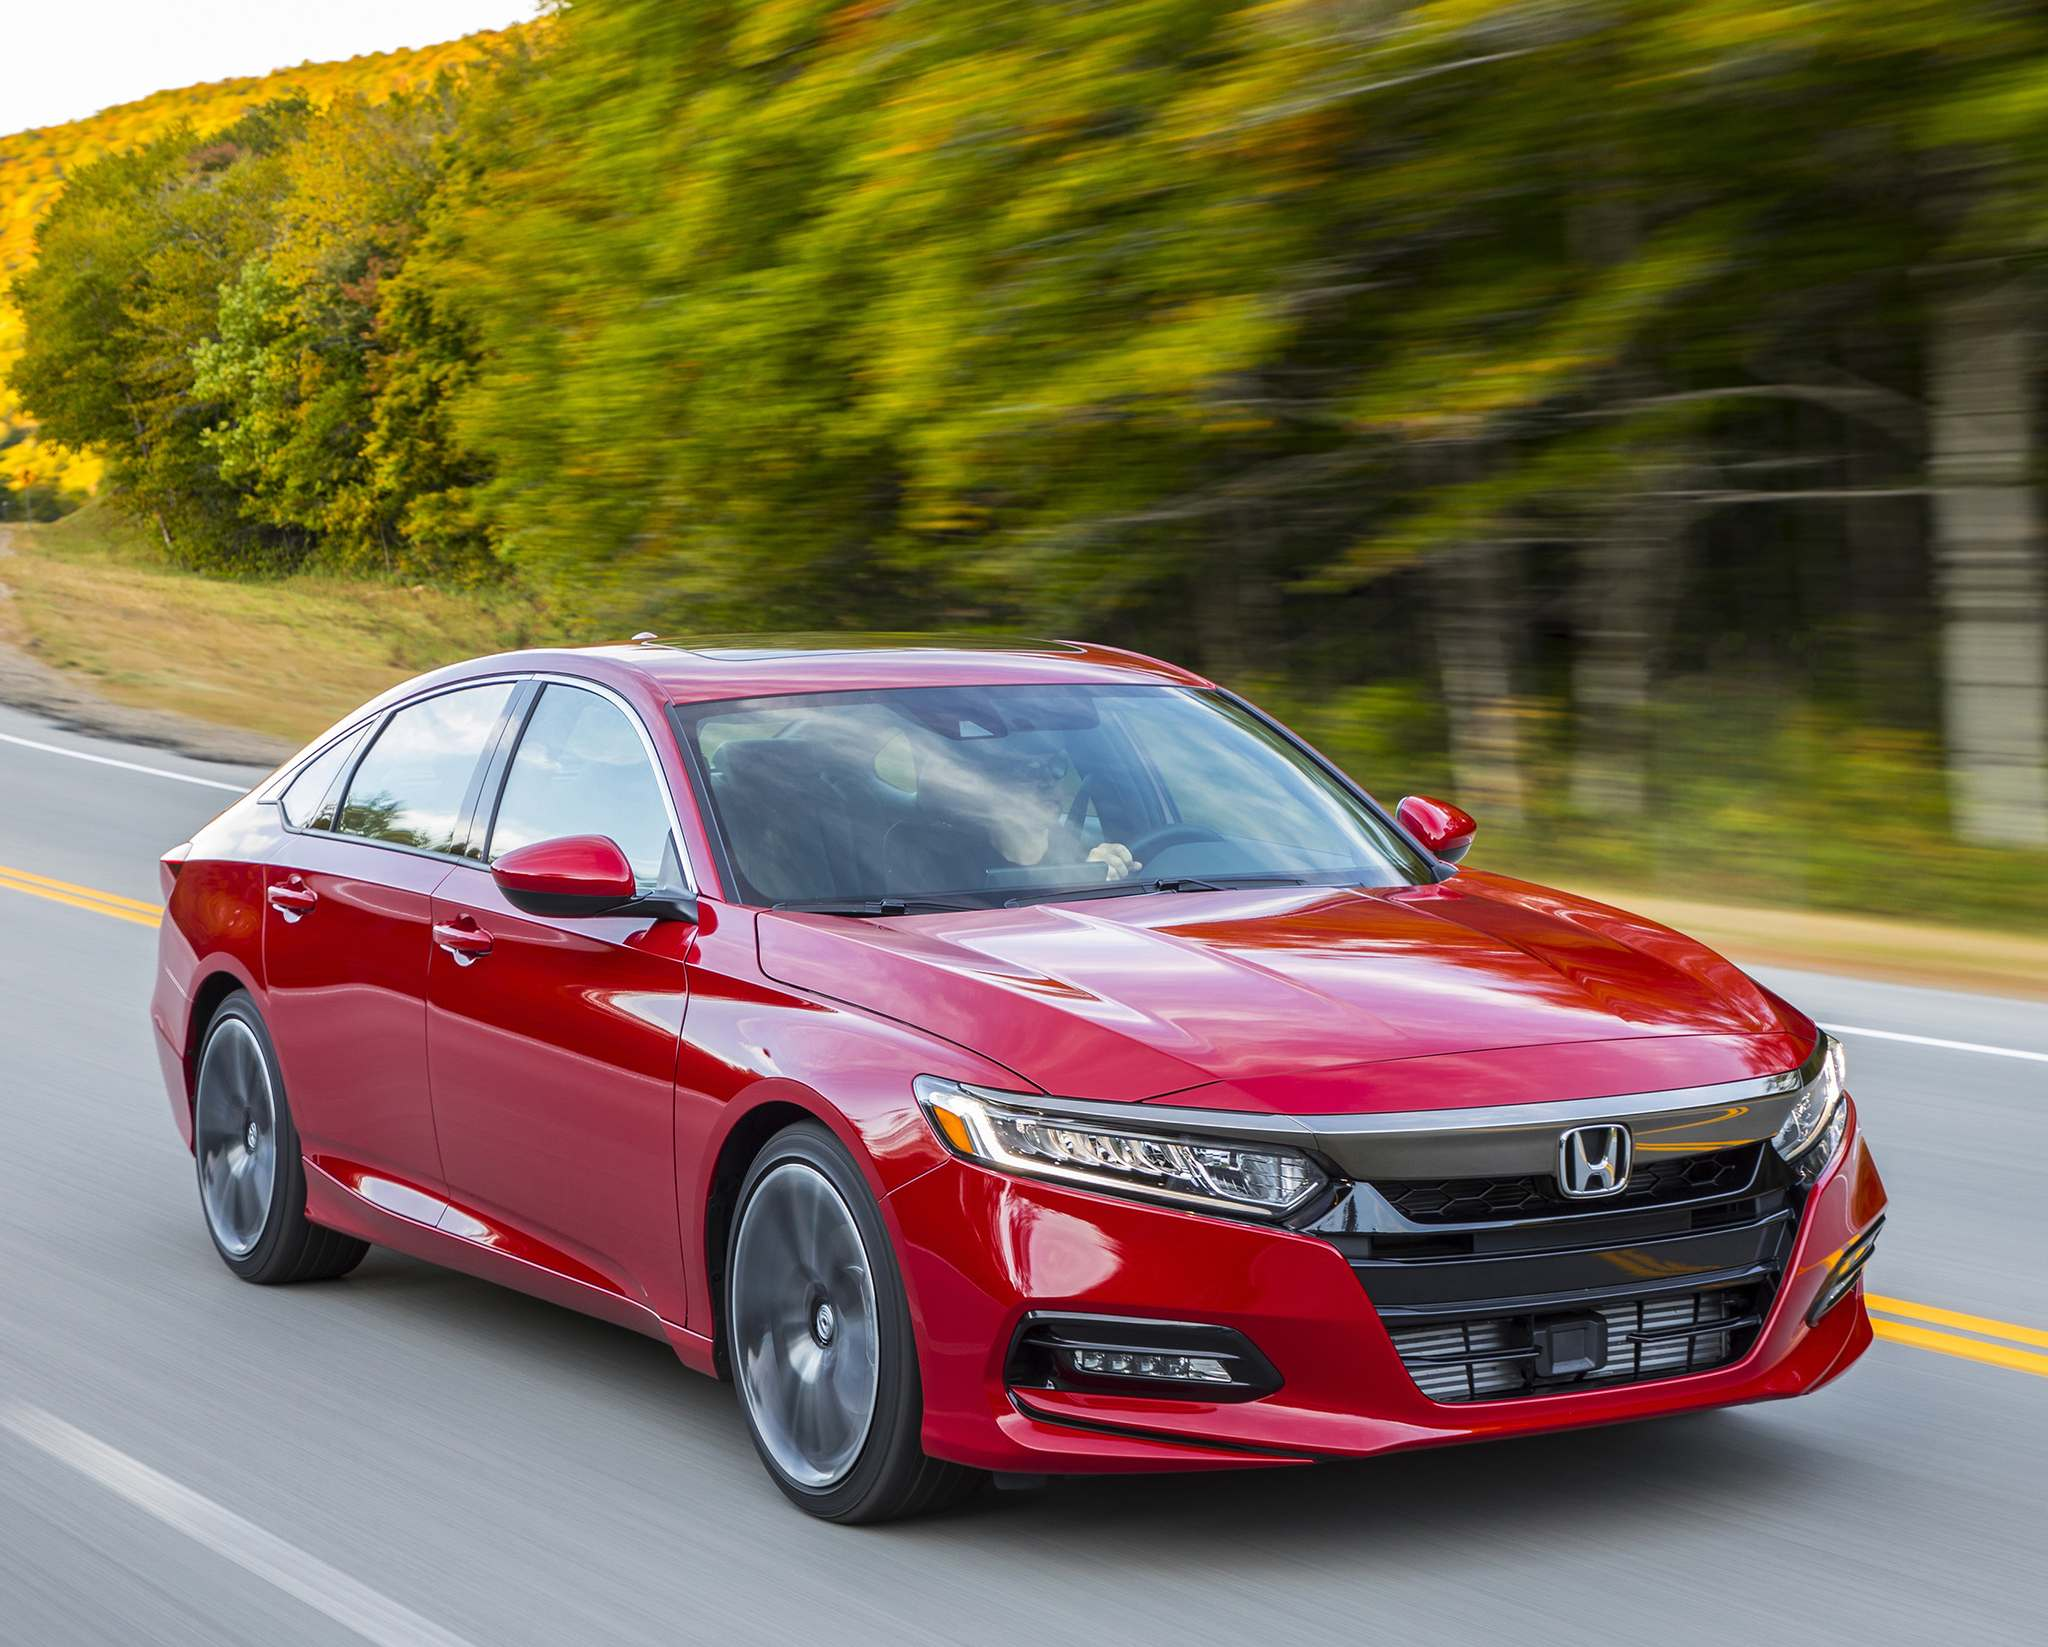 SuppliedThe new-look 2018 Honda Accord offers more rear legroom and more storage space.